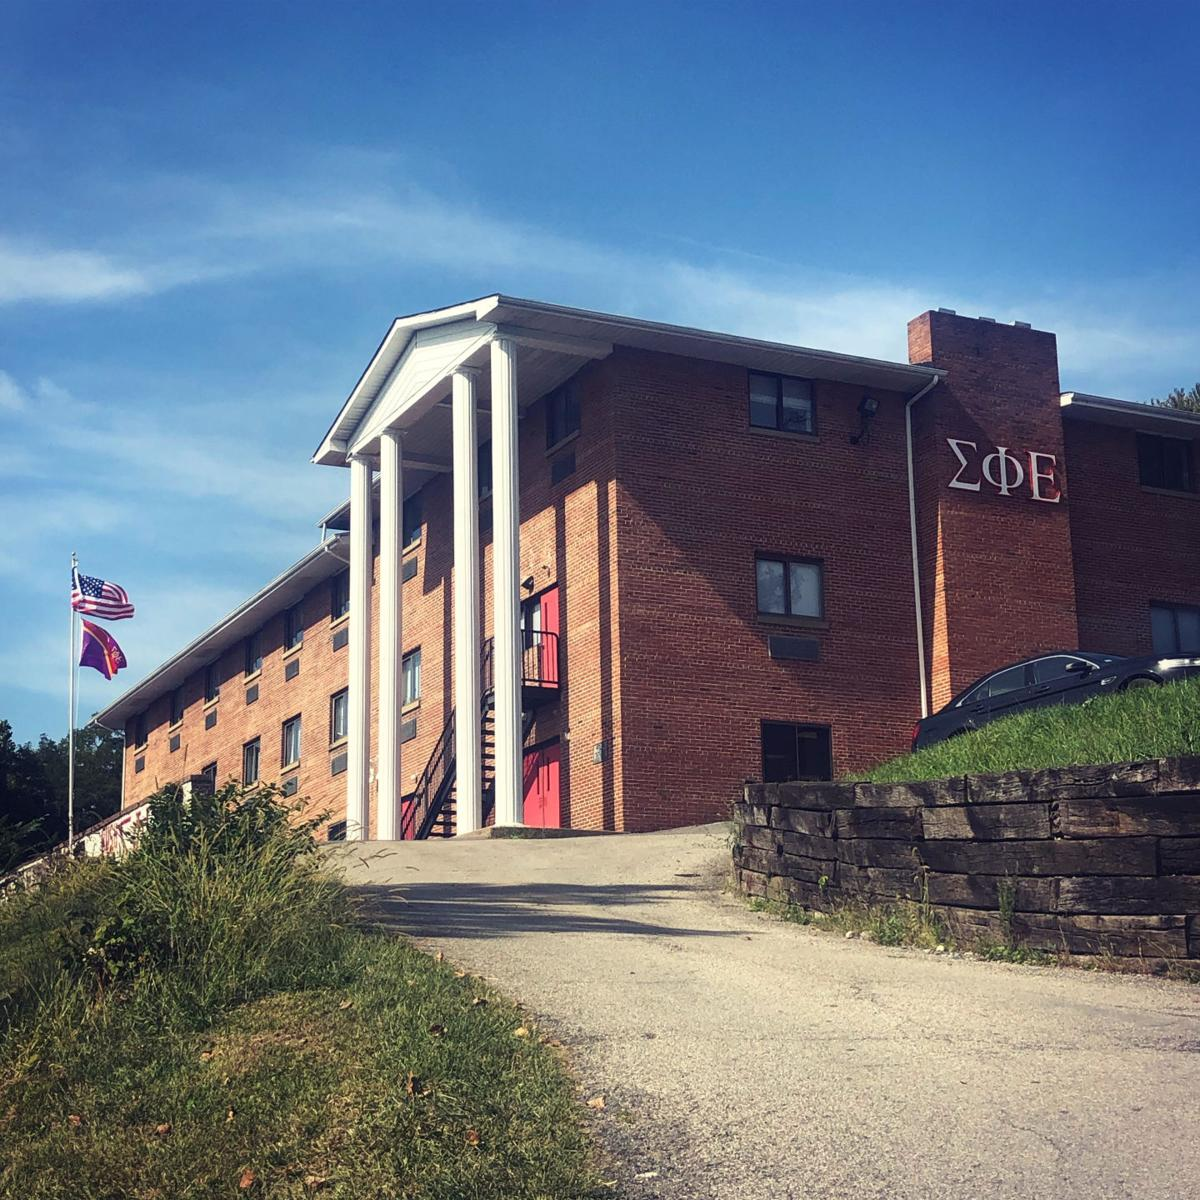 WVU's chapter of Sigma Phi Epsilon